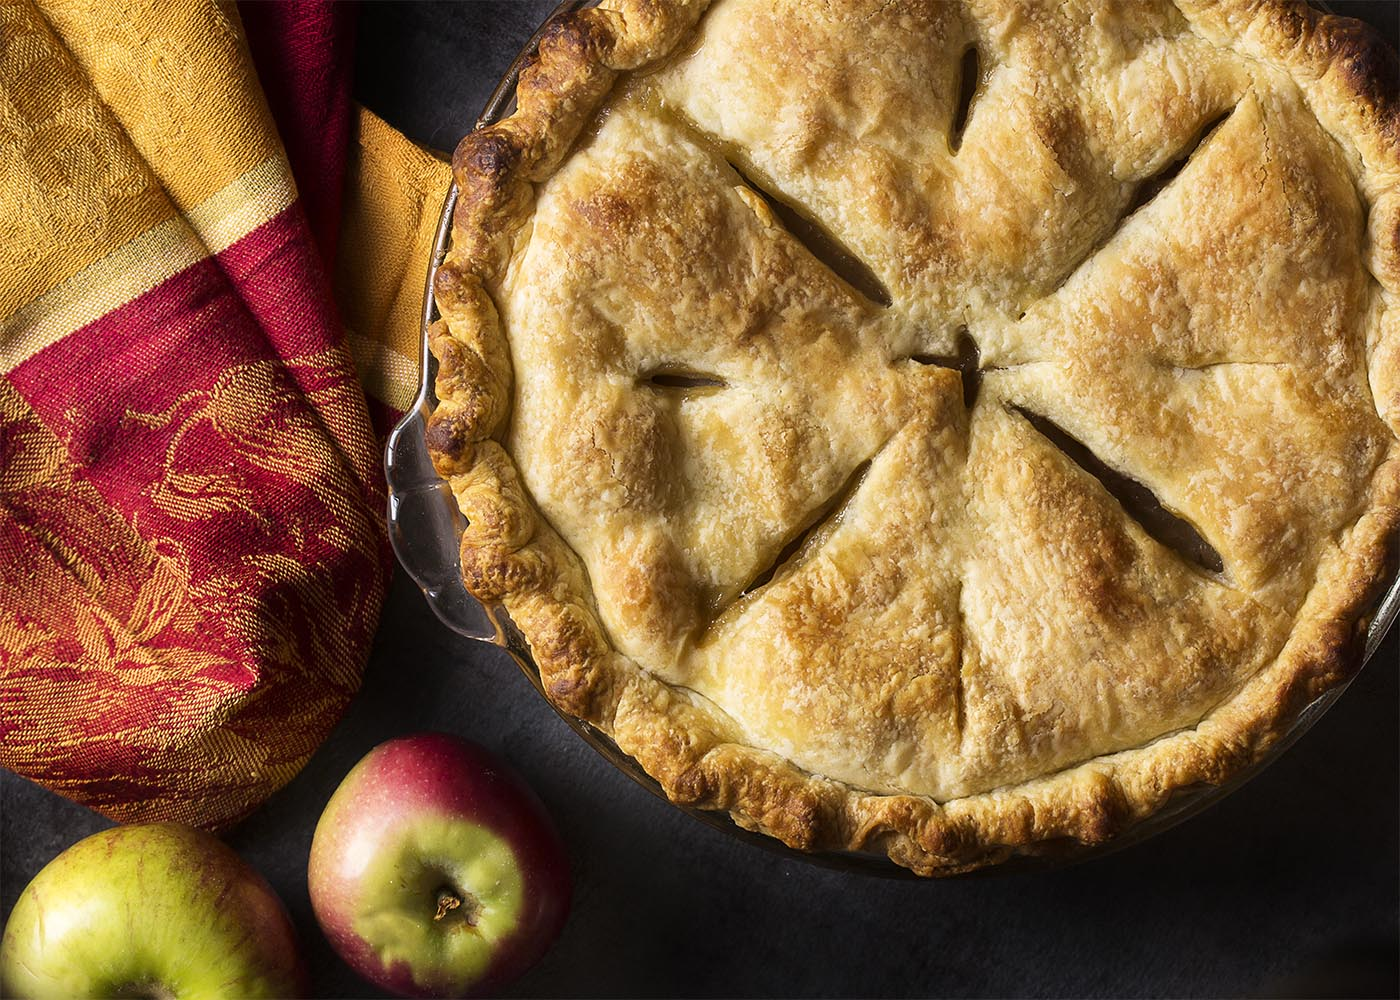 Apple pie for Thanksgiving 2016 | justalittlebitofbacon.com